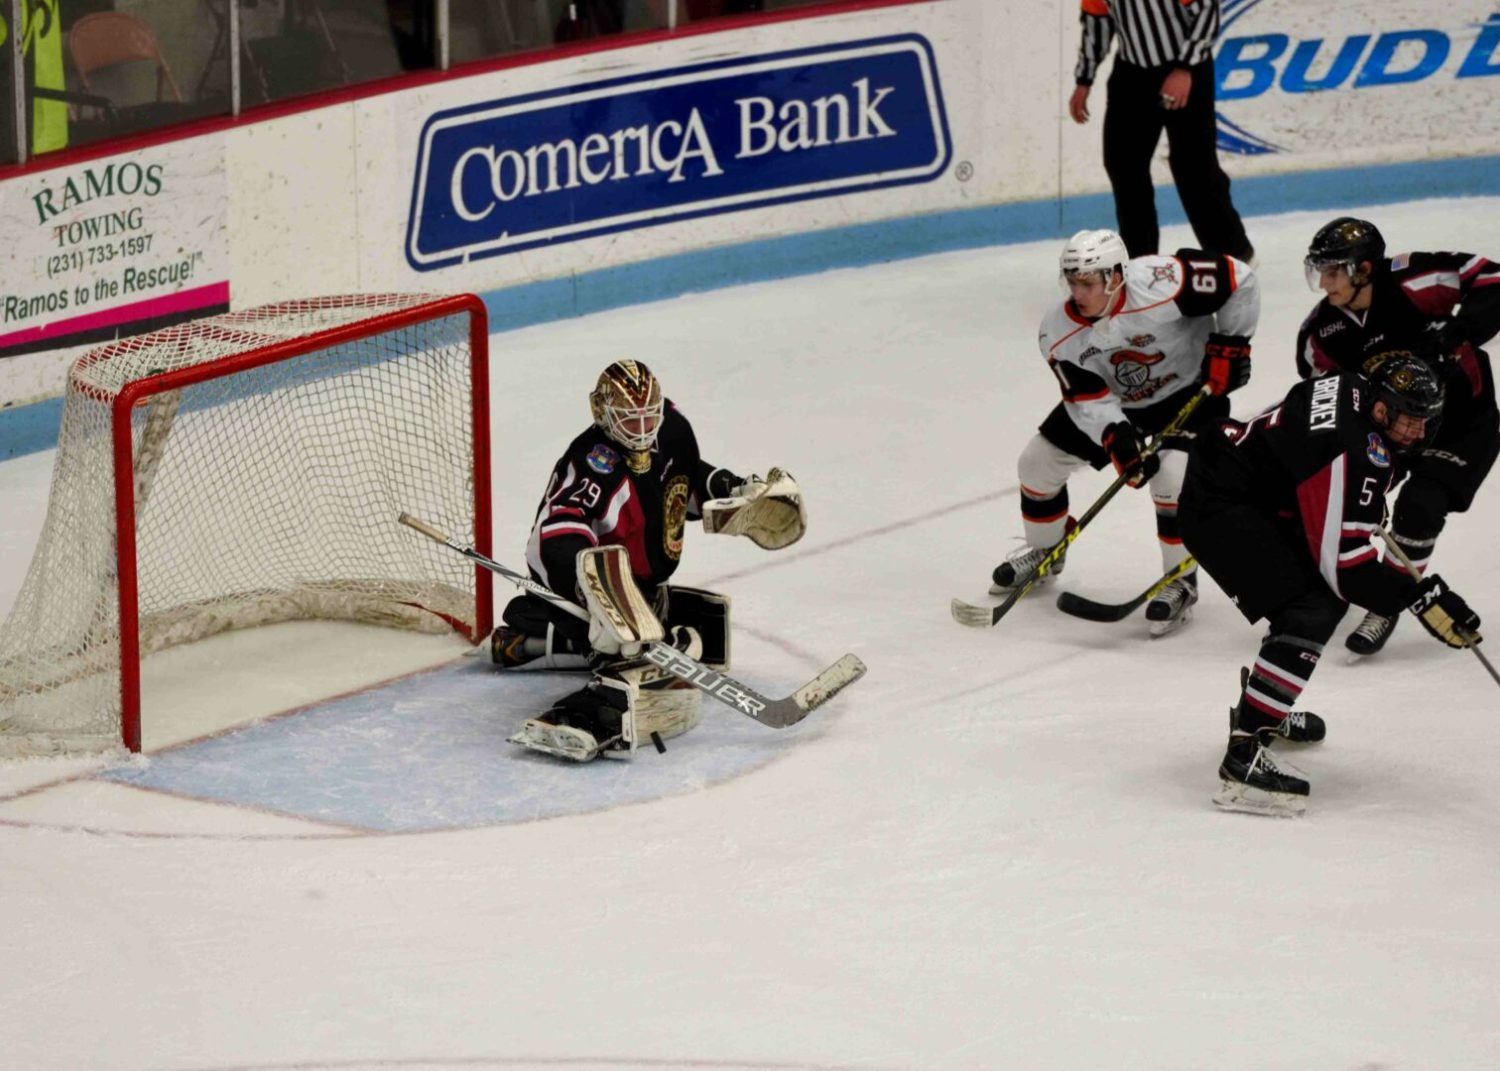 Pitlick scores the winner in OT, giving the Lumberjacks a 3-2 win over Omaha